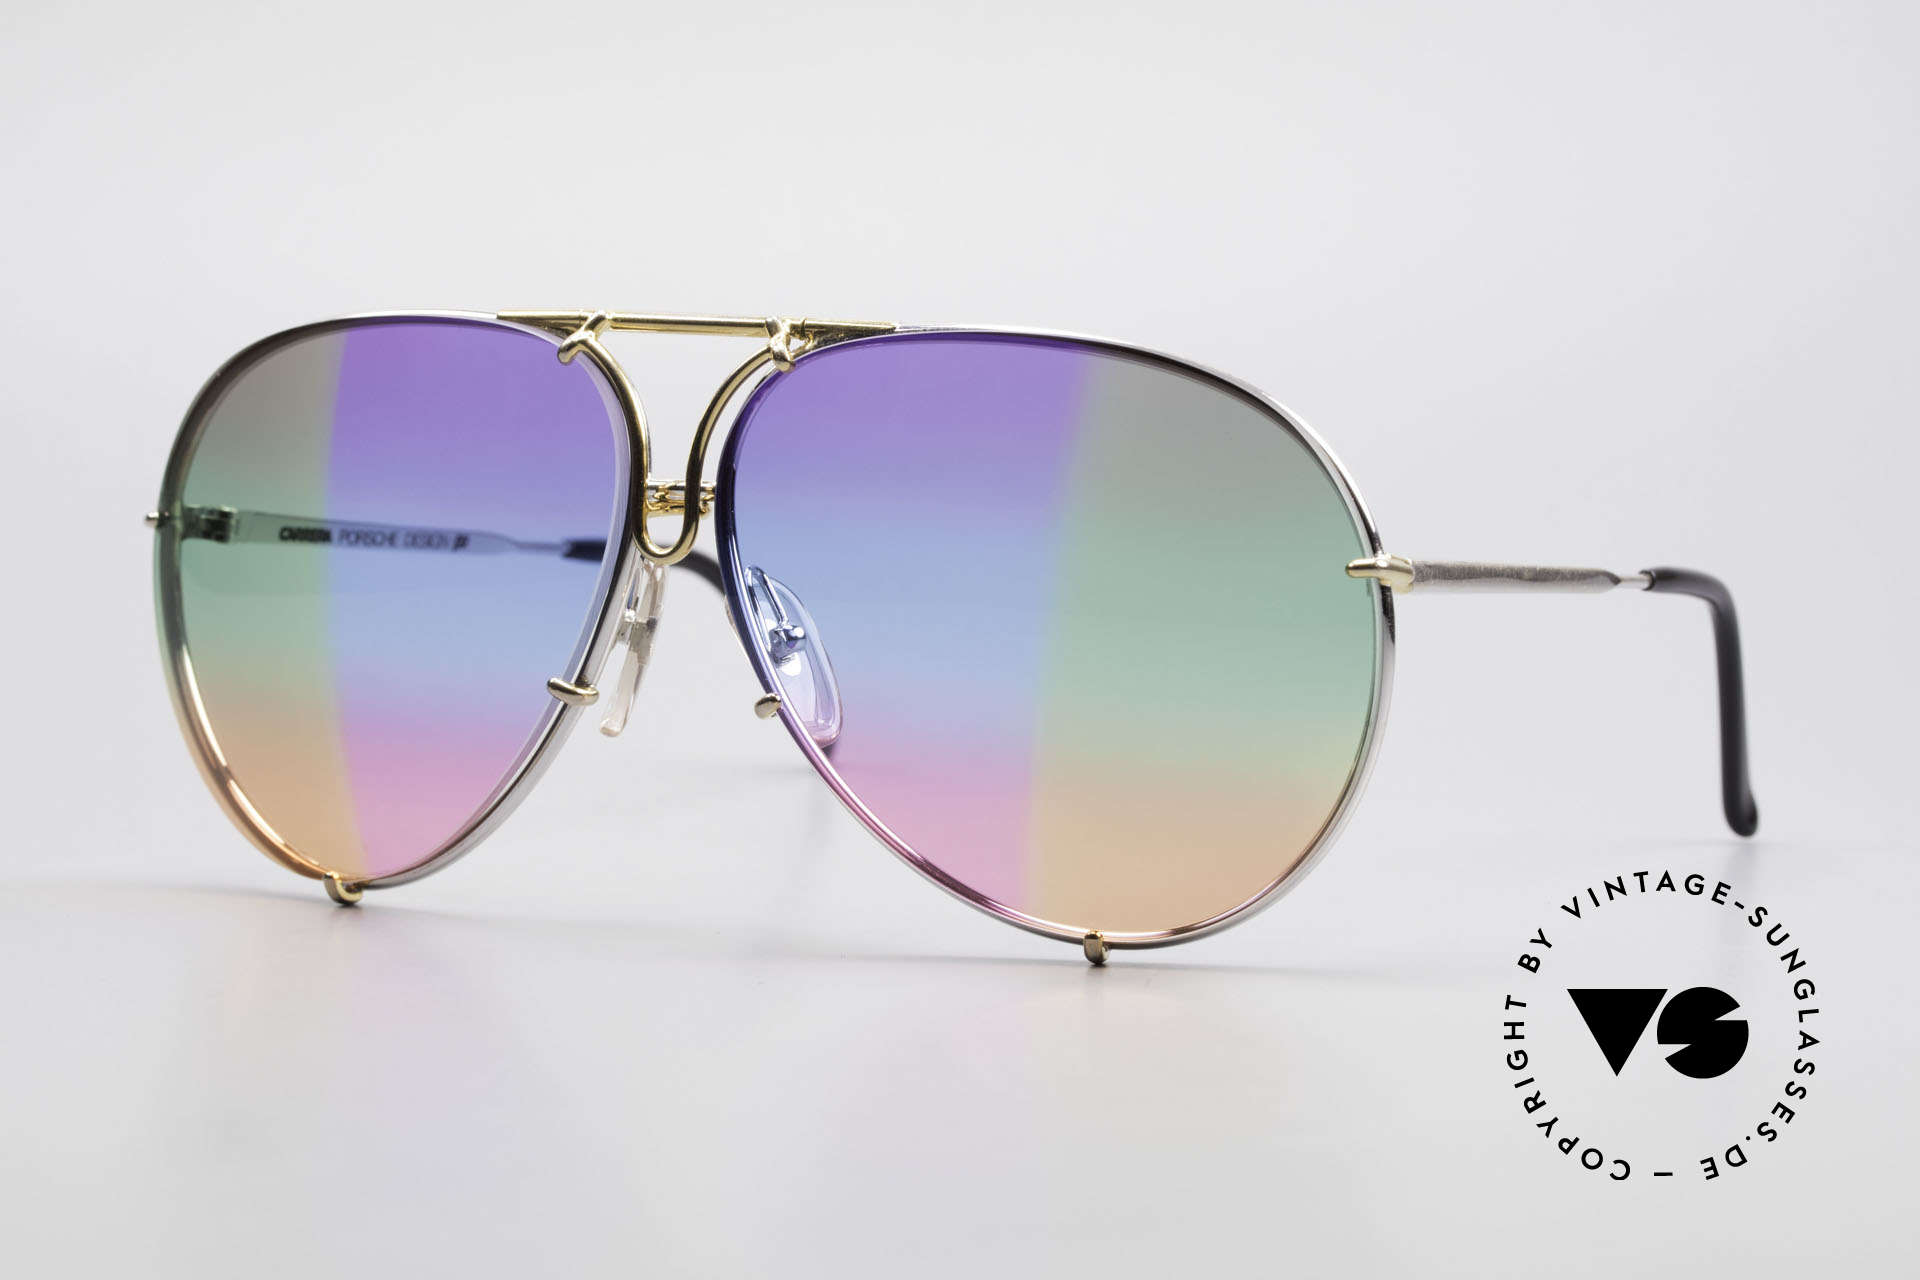 Porsche 5623 One Of A Kind 6times Gradient, vintage Porsche Design by Carrera shades from 1987, Made for Men and Women